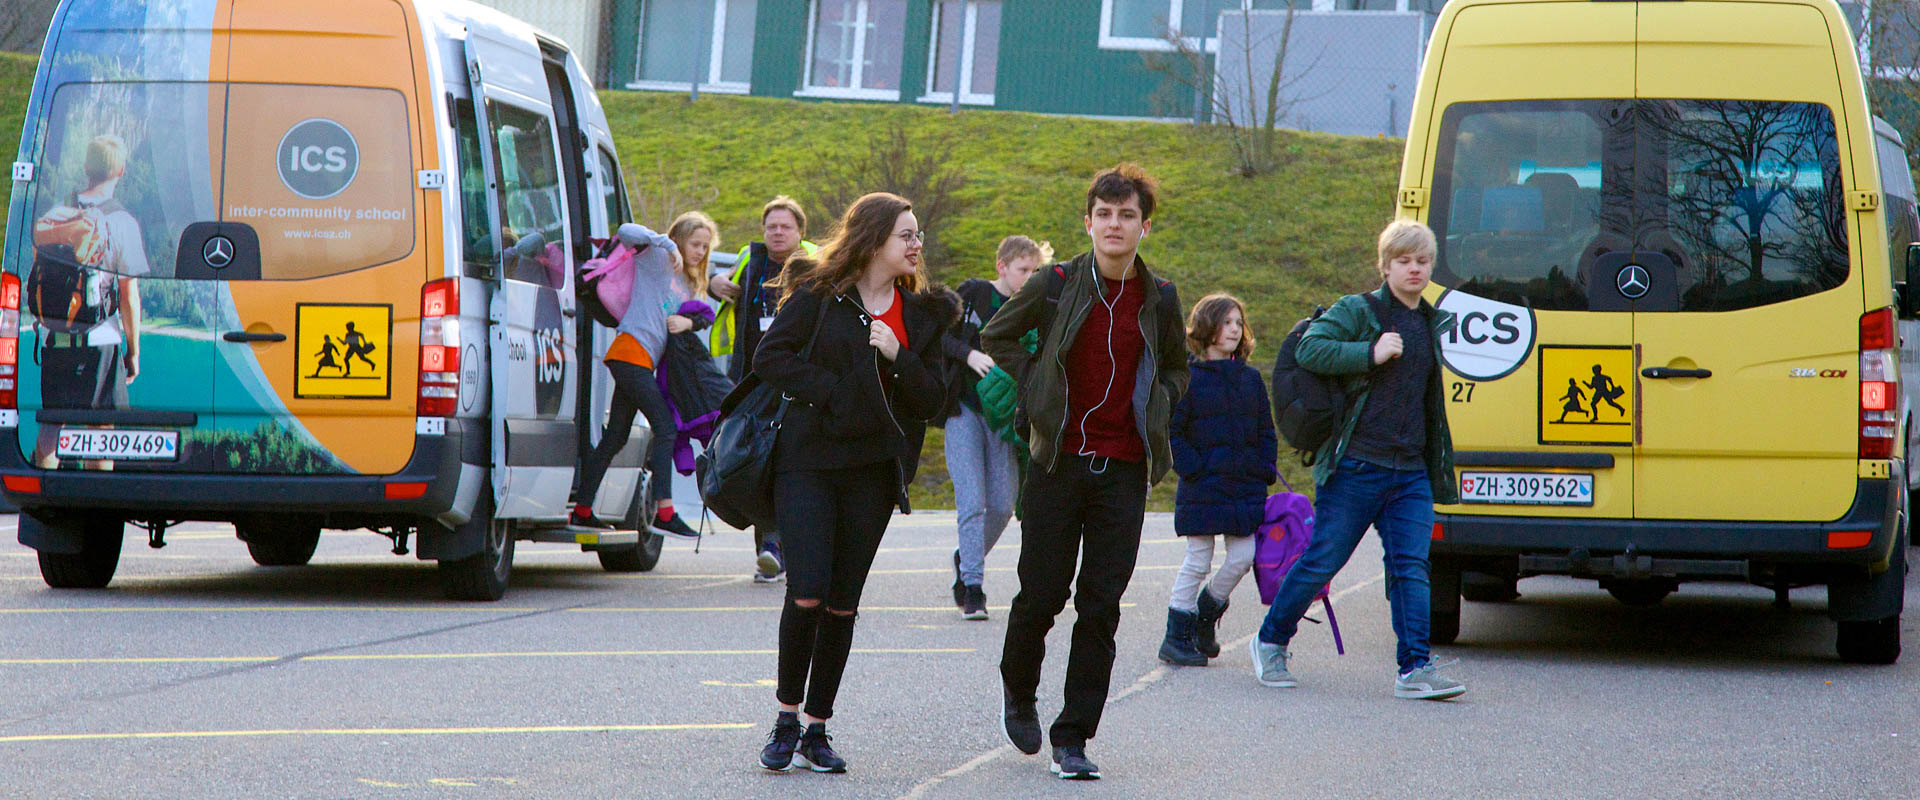 students arriving to school by school bus, international school